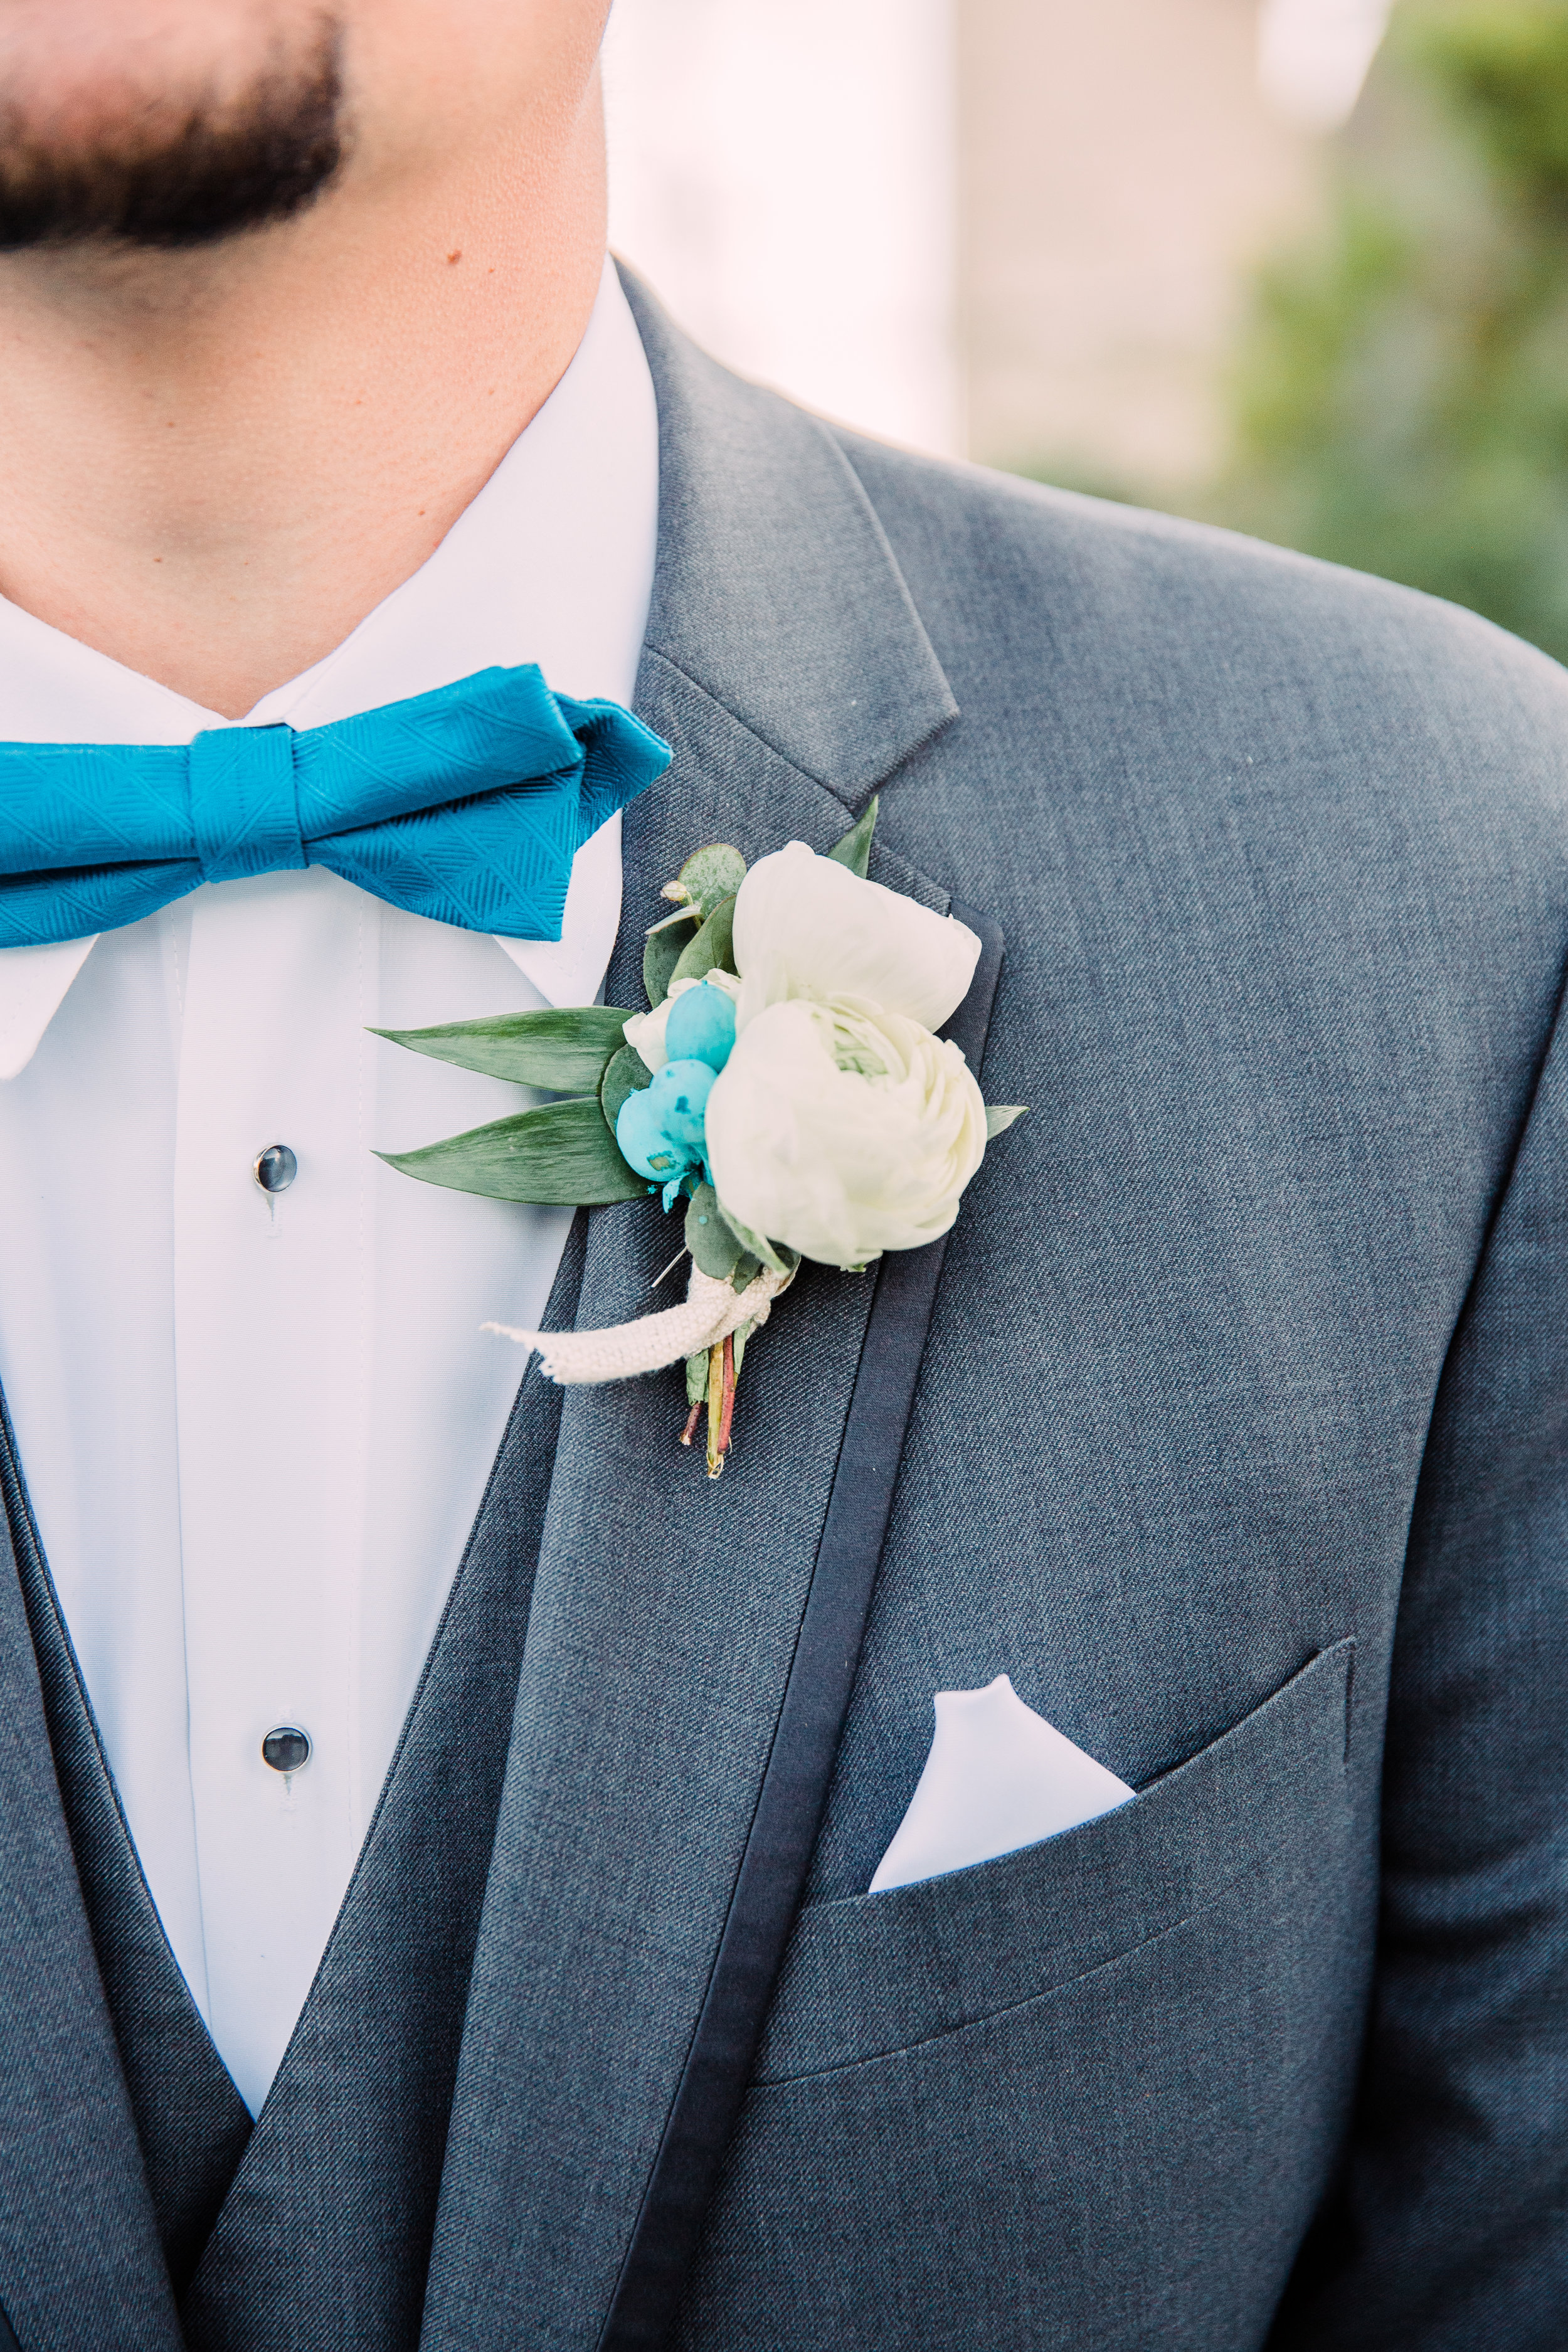 Adorable little blue bow tie with a beautifully complementing boutonnière. I simply adore the splash of matching blue underneath the white flowers.